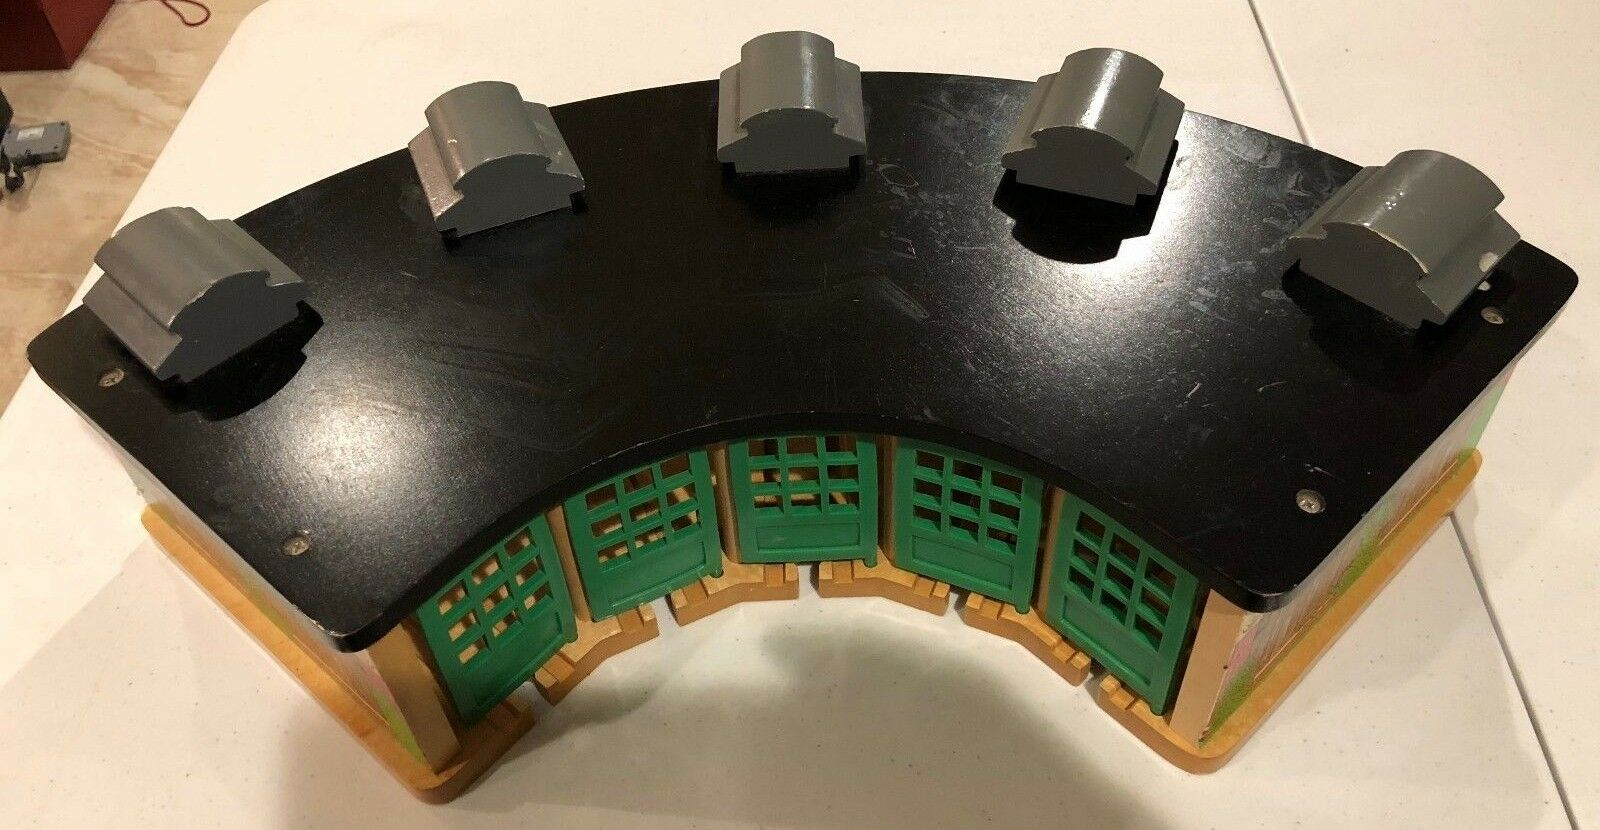 Thomas and Friends Roundhouse and Round About Action Turntable, LC99320, LC99927